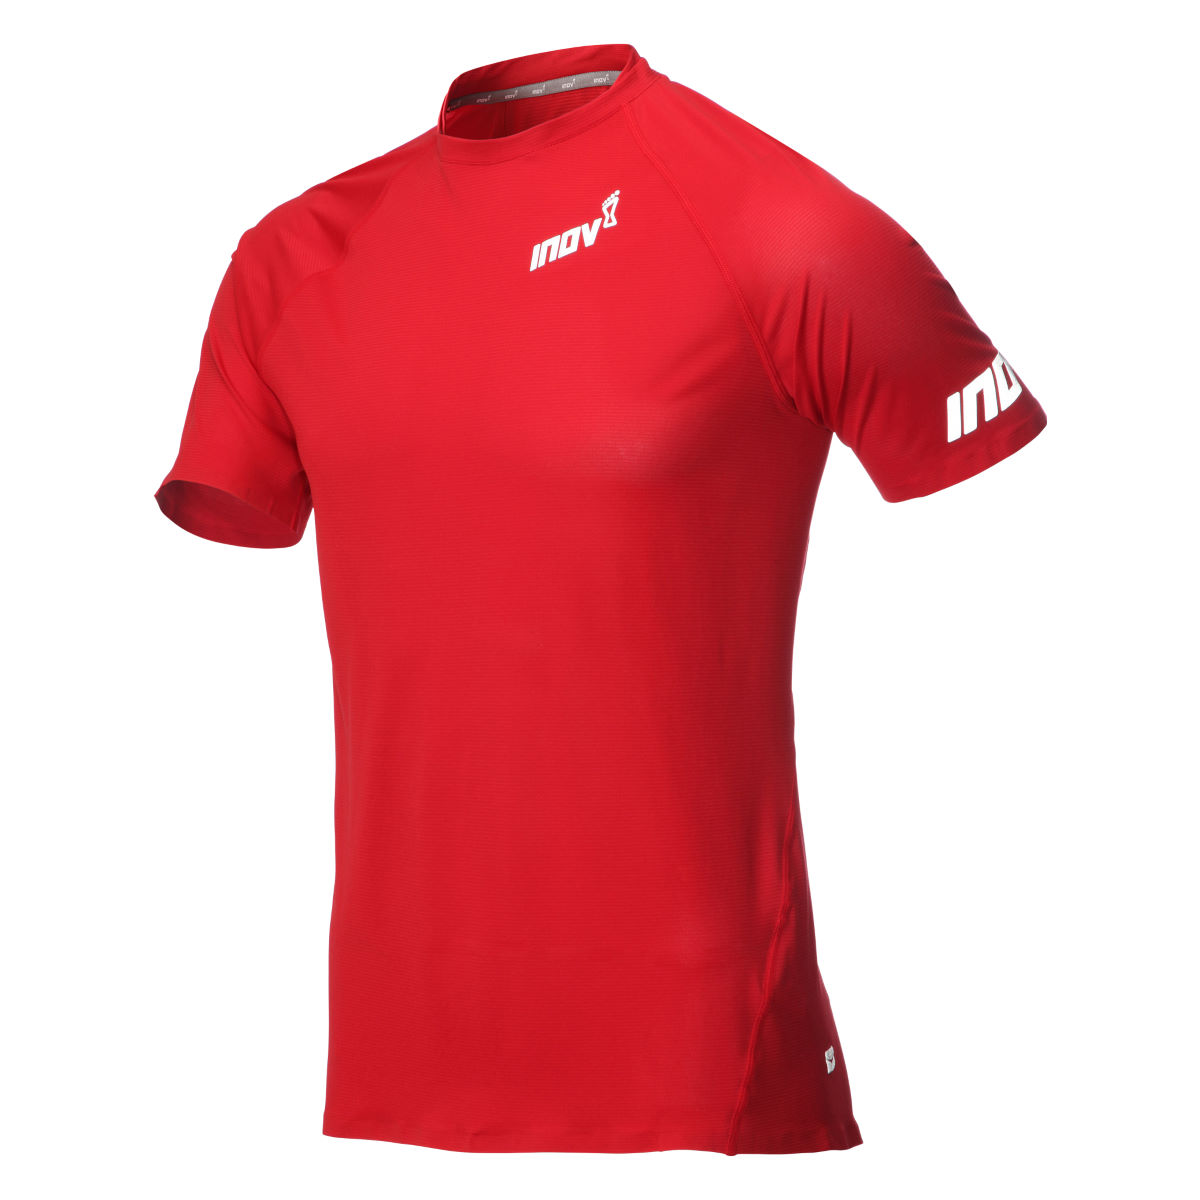 Maillot de corps Inov-8 AT/C (manches courtes) - M Dark Red  T-shirts